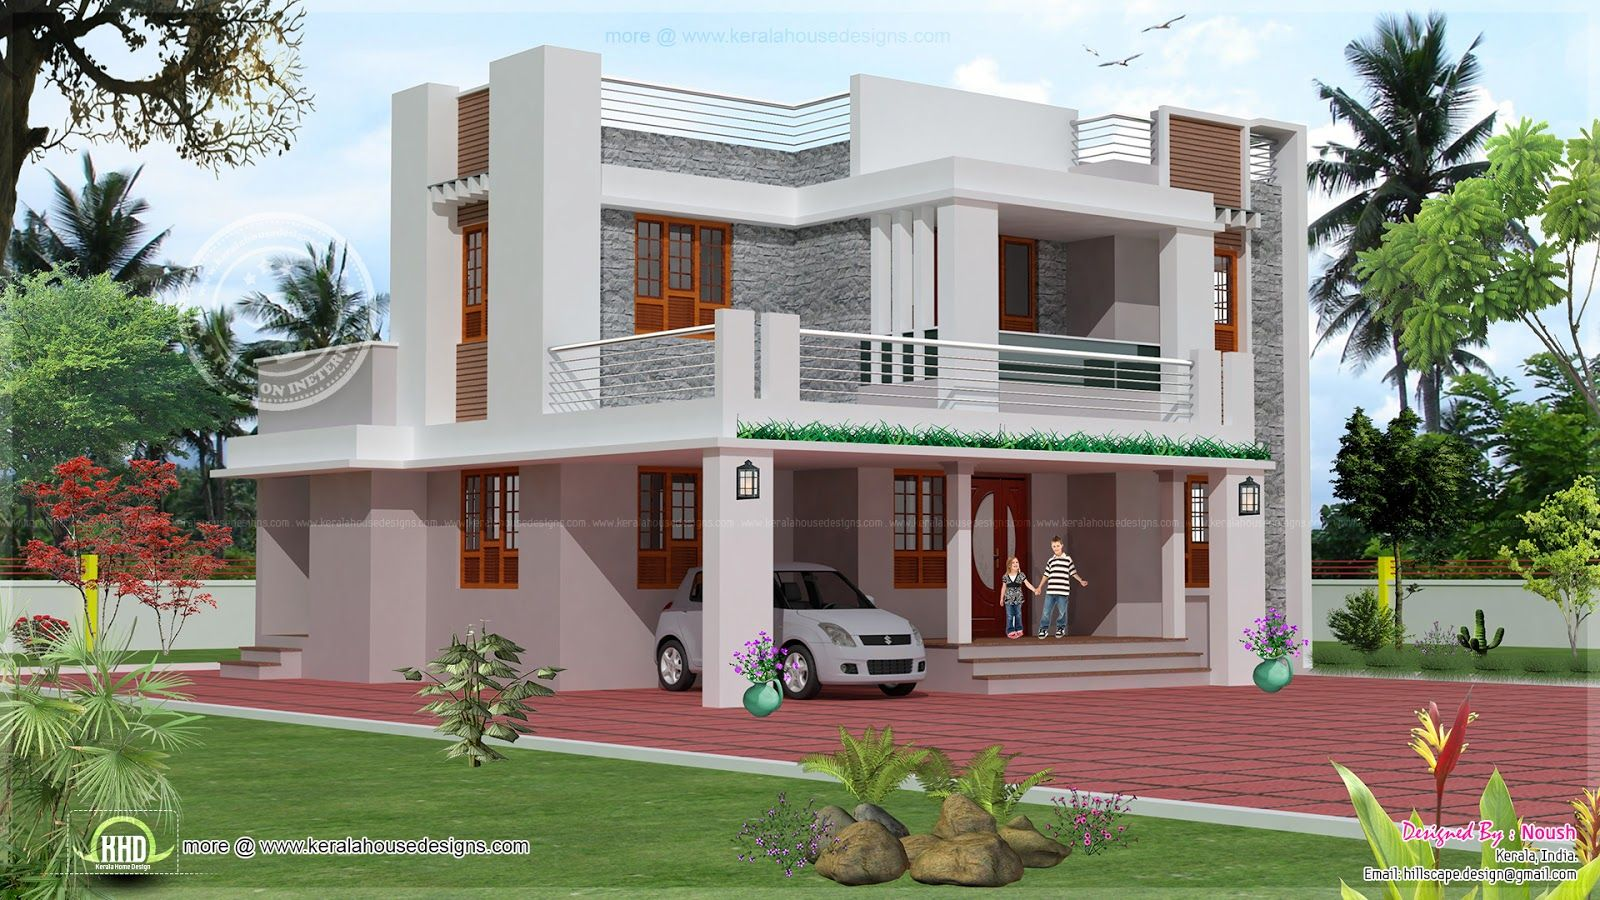 Simple Exterior House Designs In Kerala exellent architecture design kerala home recently d front house